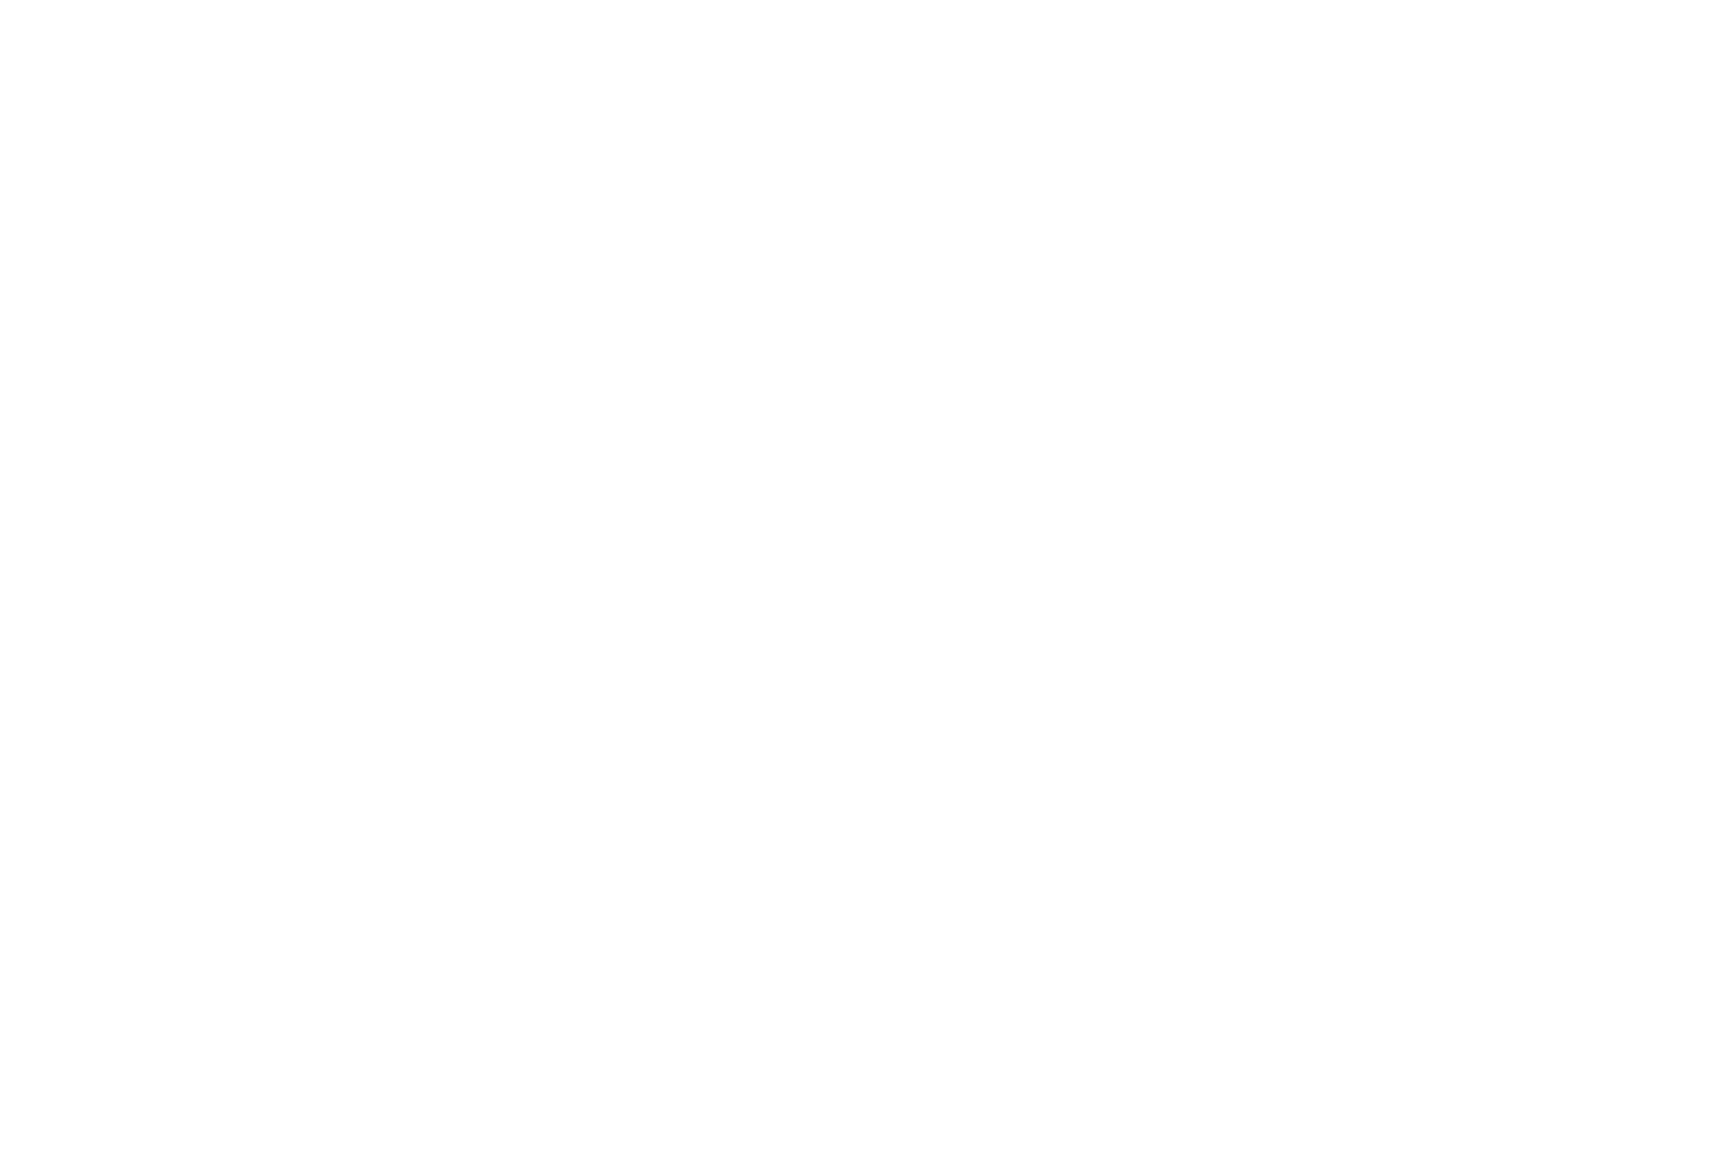 QUARTER-FINALIST - DFF Screenwriting Competition - 2021